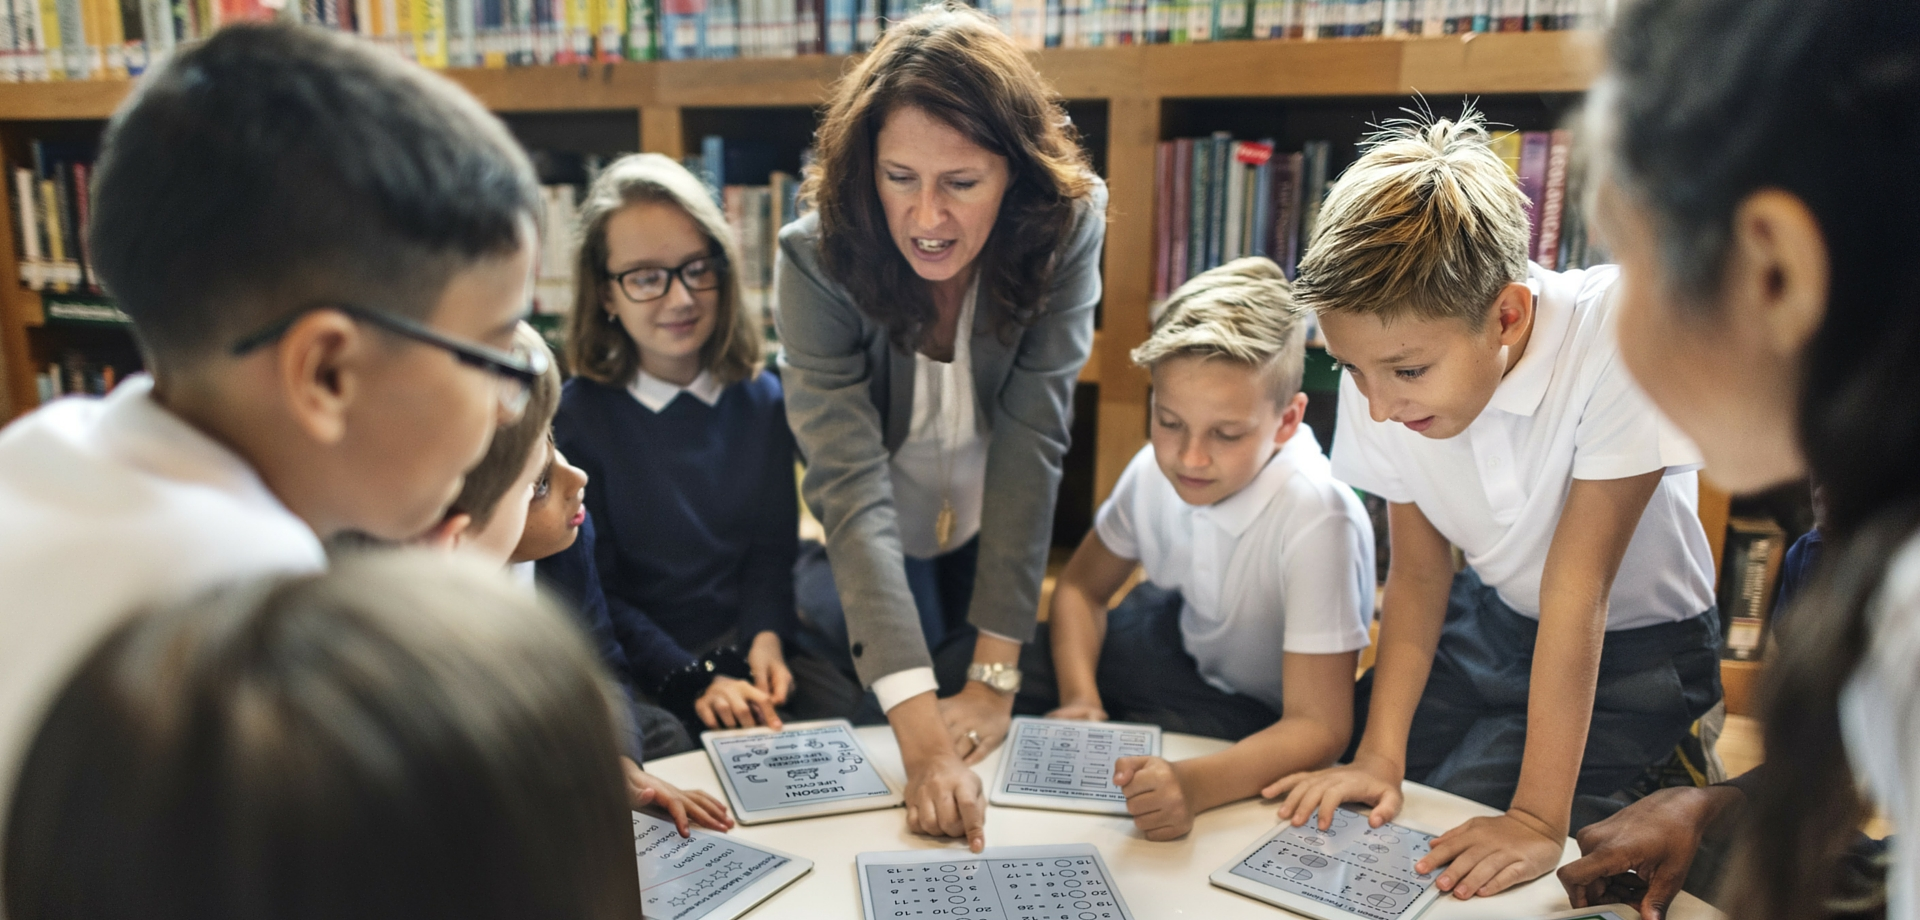 support learning and teaching in school Education courses include the study of child development and learning, pedagogy, and teaching methods, plus an intensively supervised internship in a school affiliated with the university in 1989 both france and japan undertook major teacher education reforms to extend both university- and school-based training.